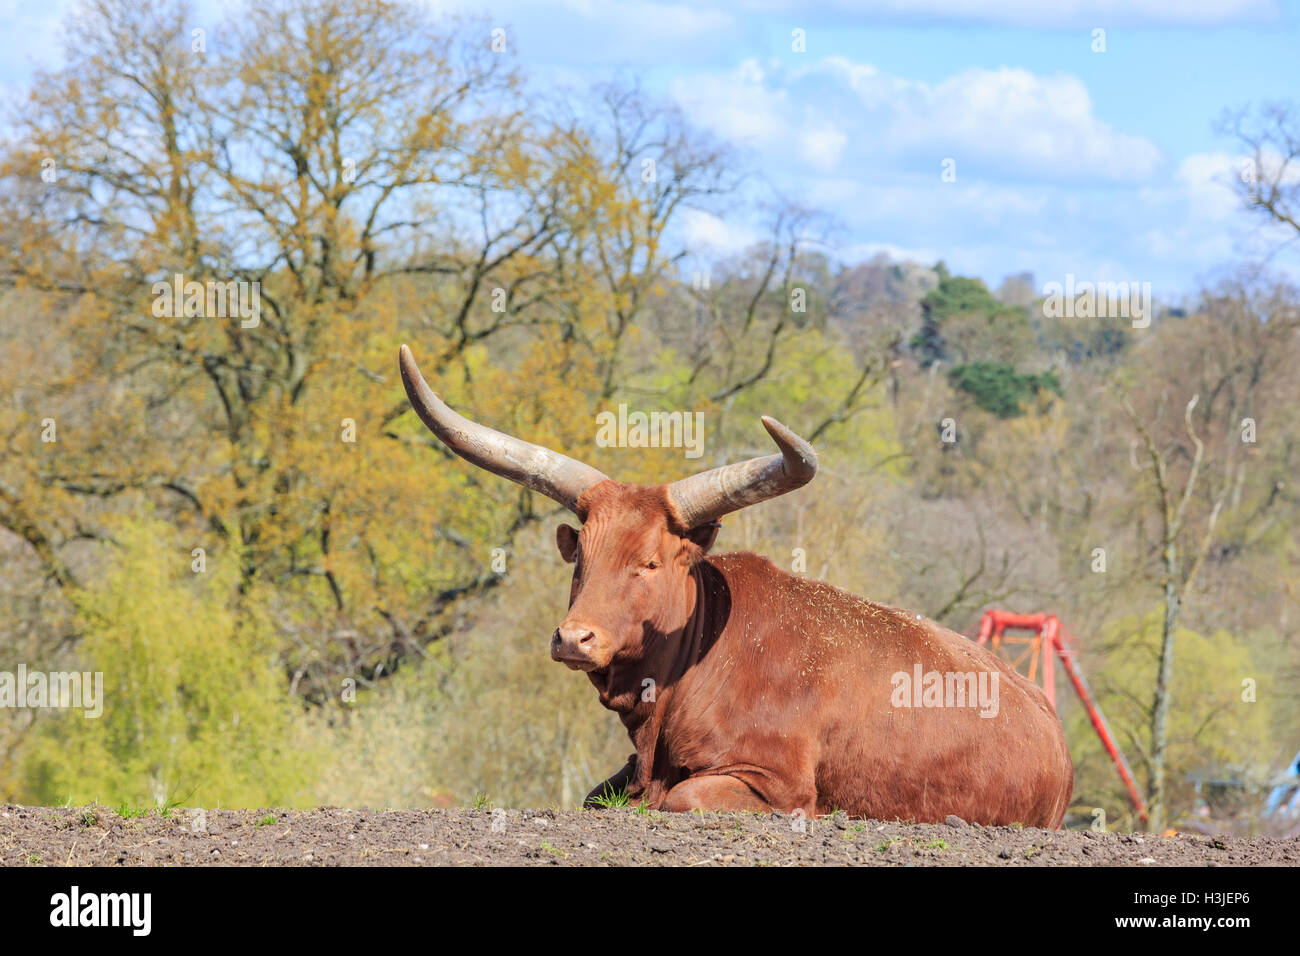 Spring Grove, APR 23: Cow in the beautiful West Midland Safari Park on APR 23, 2016 at Spring Grove, United Kingdom - Stock Image